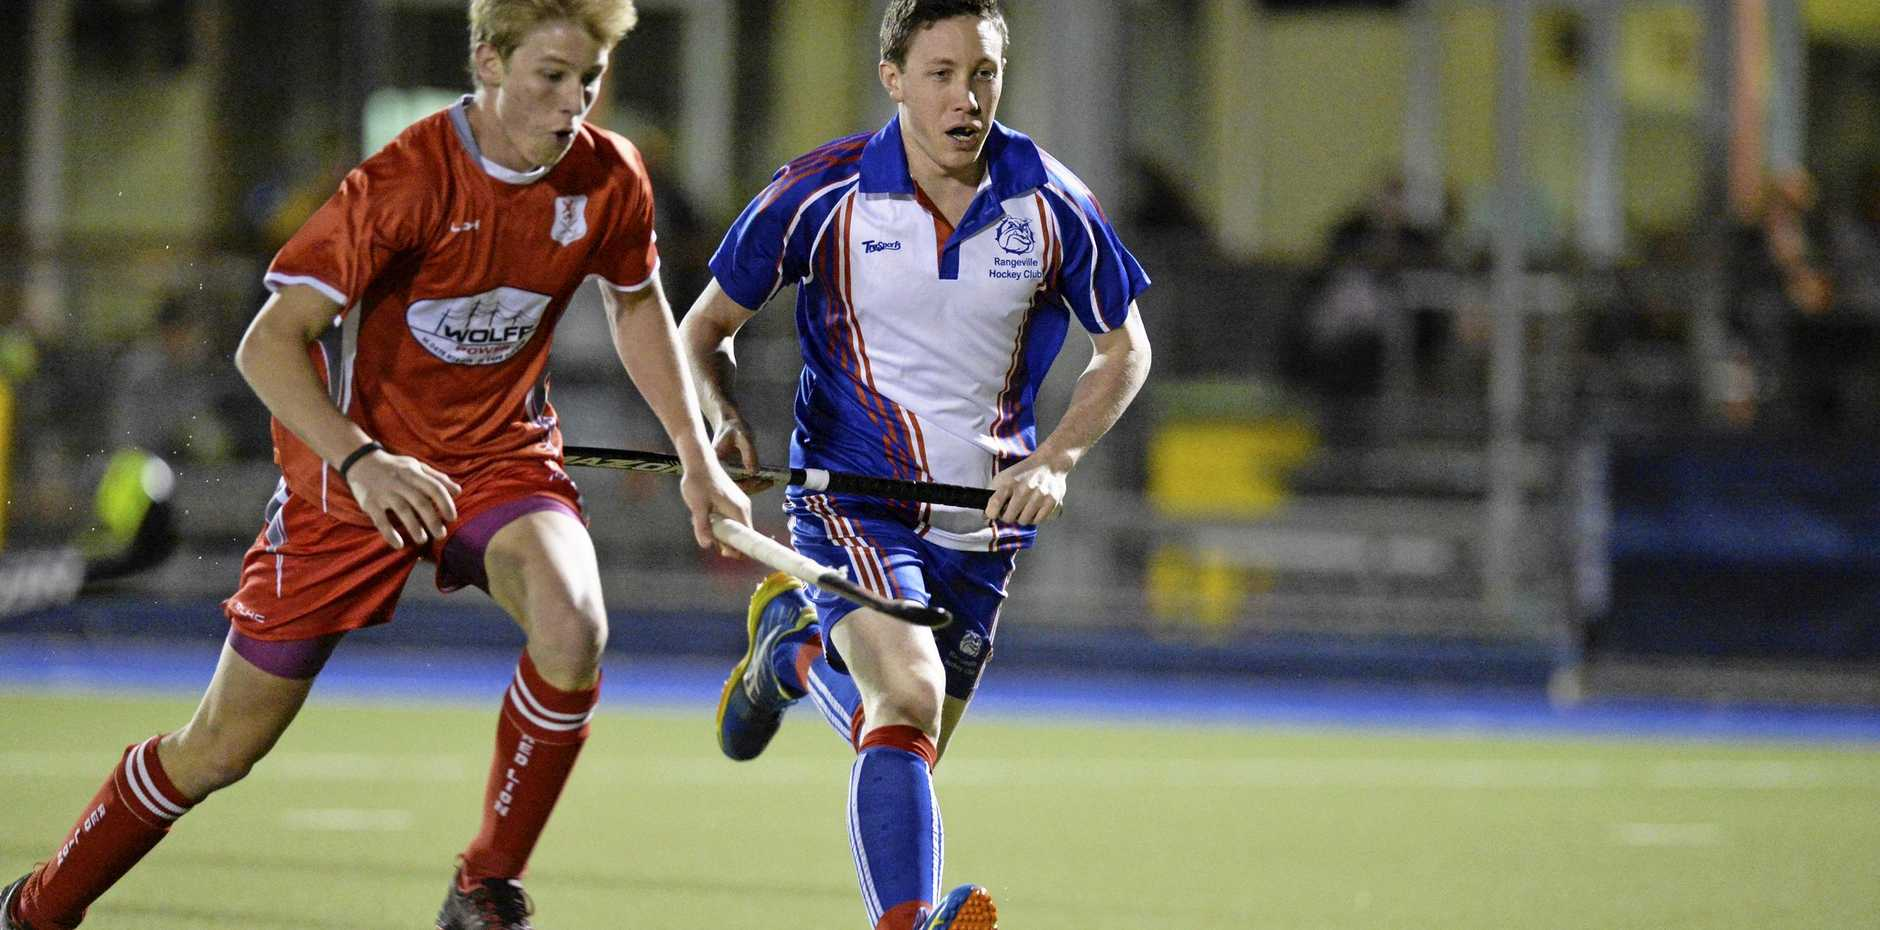 Rangeville player Jacob Johnson chases the ball down.